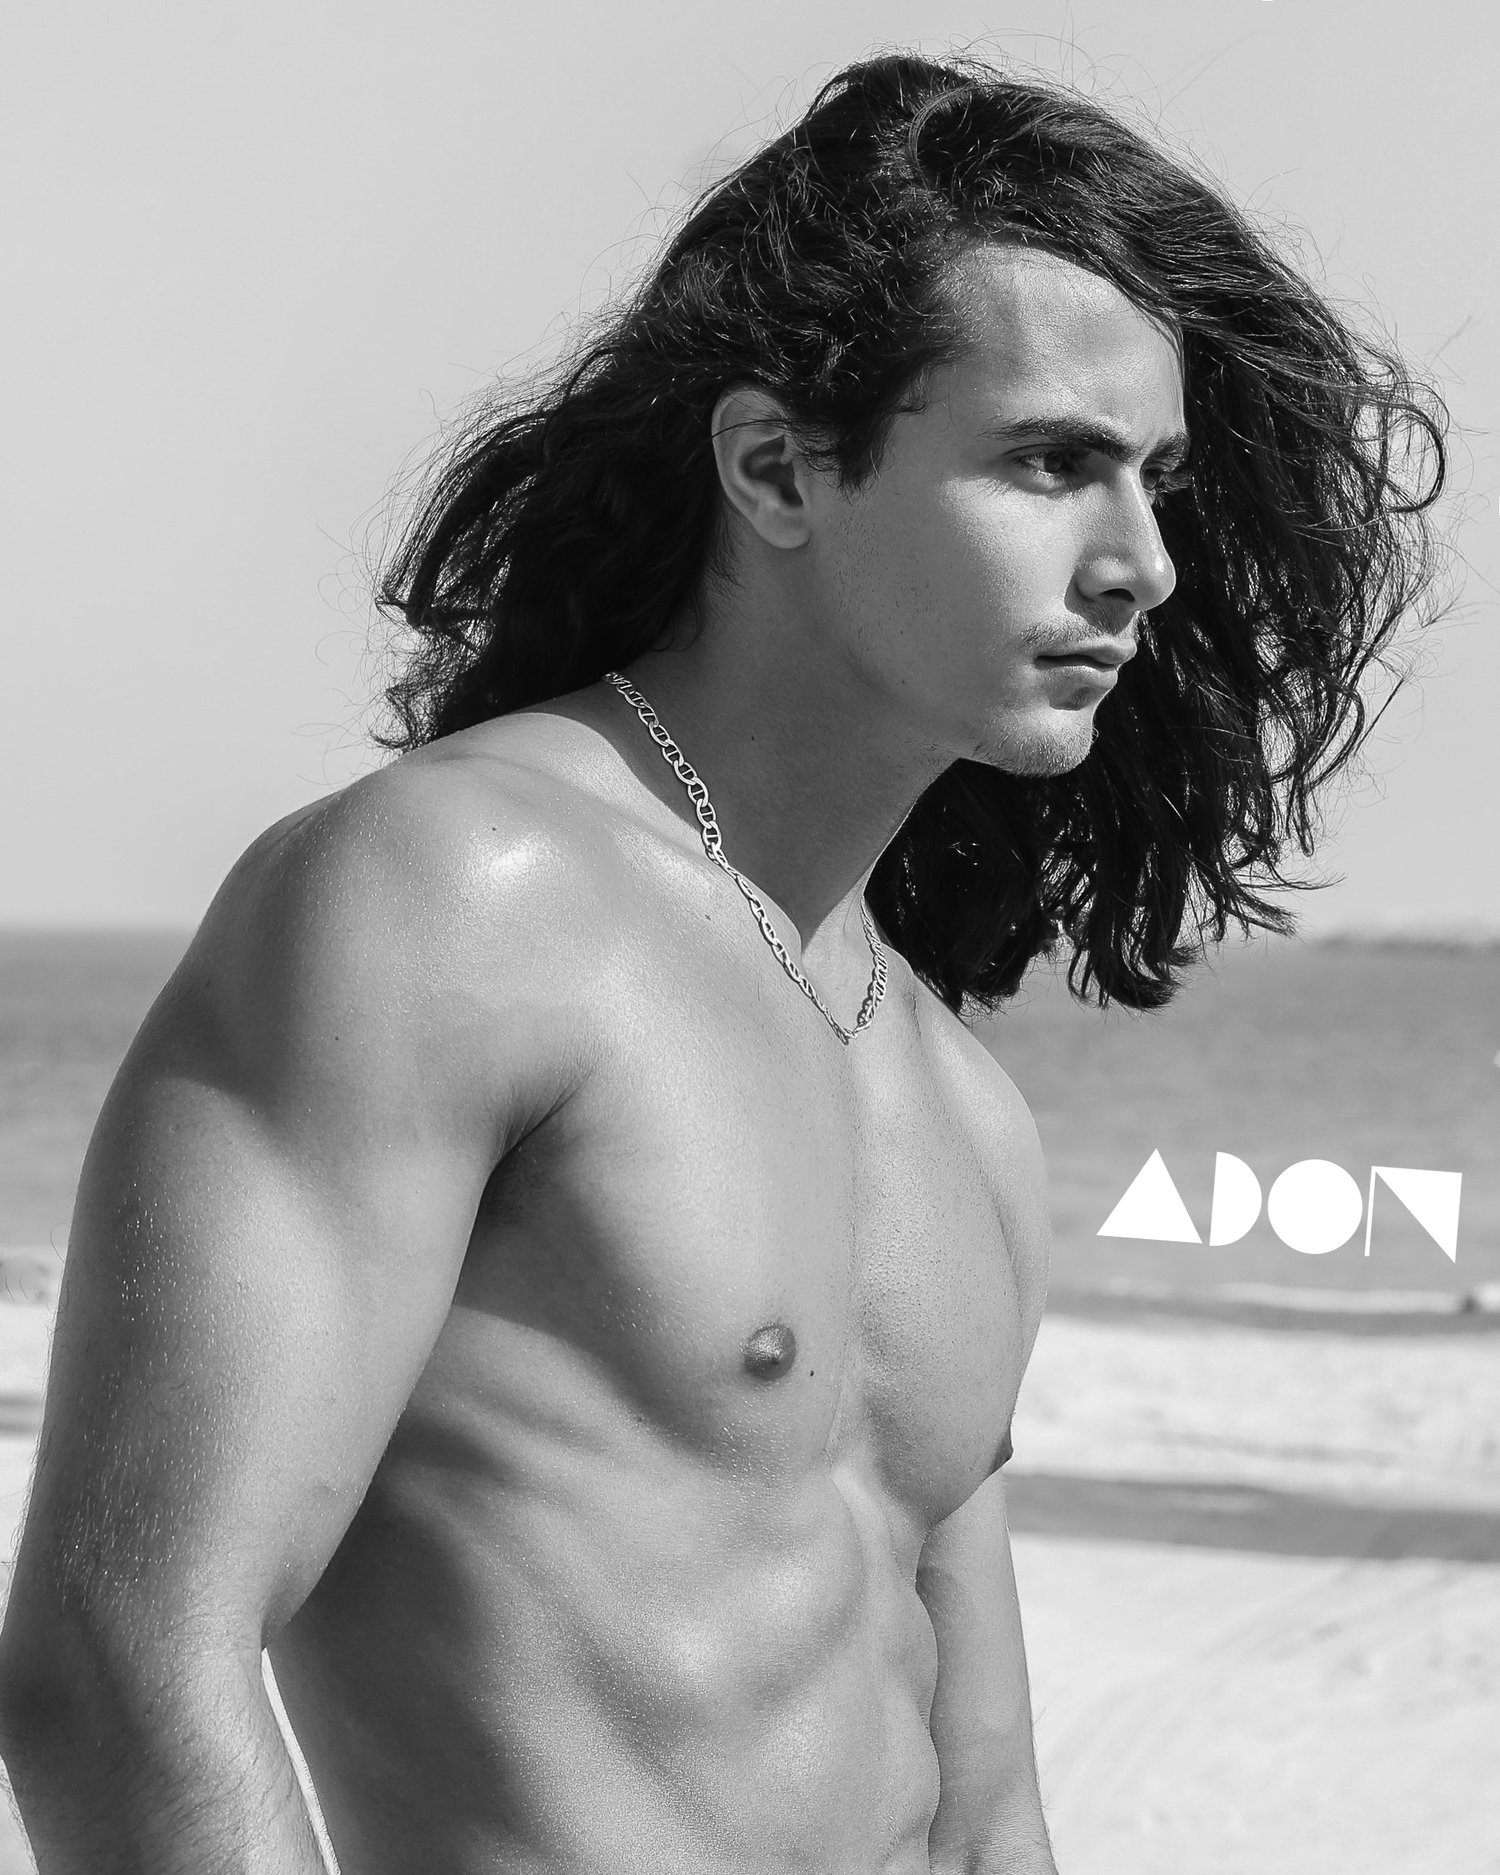 Adon Exclusive: Model Saif By Ronaldo Mercado